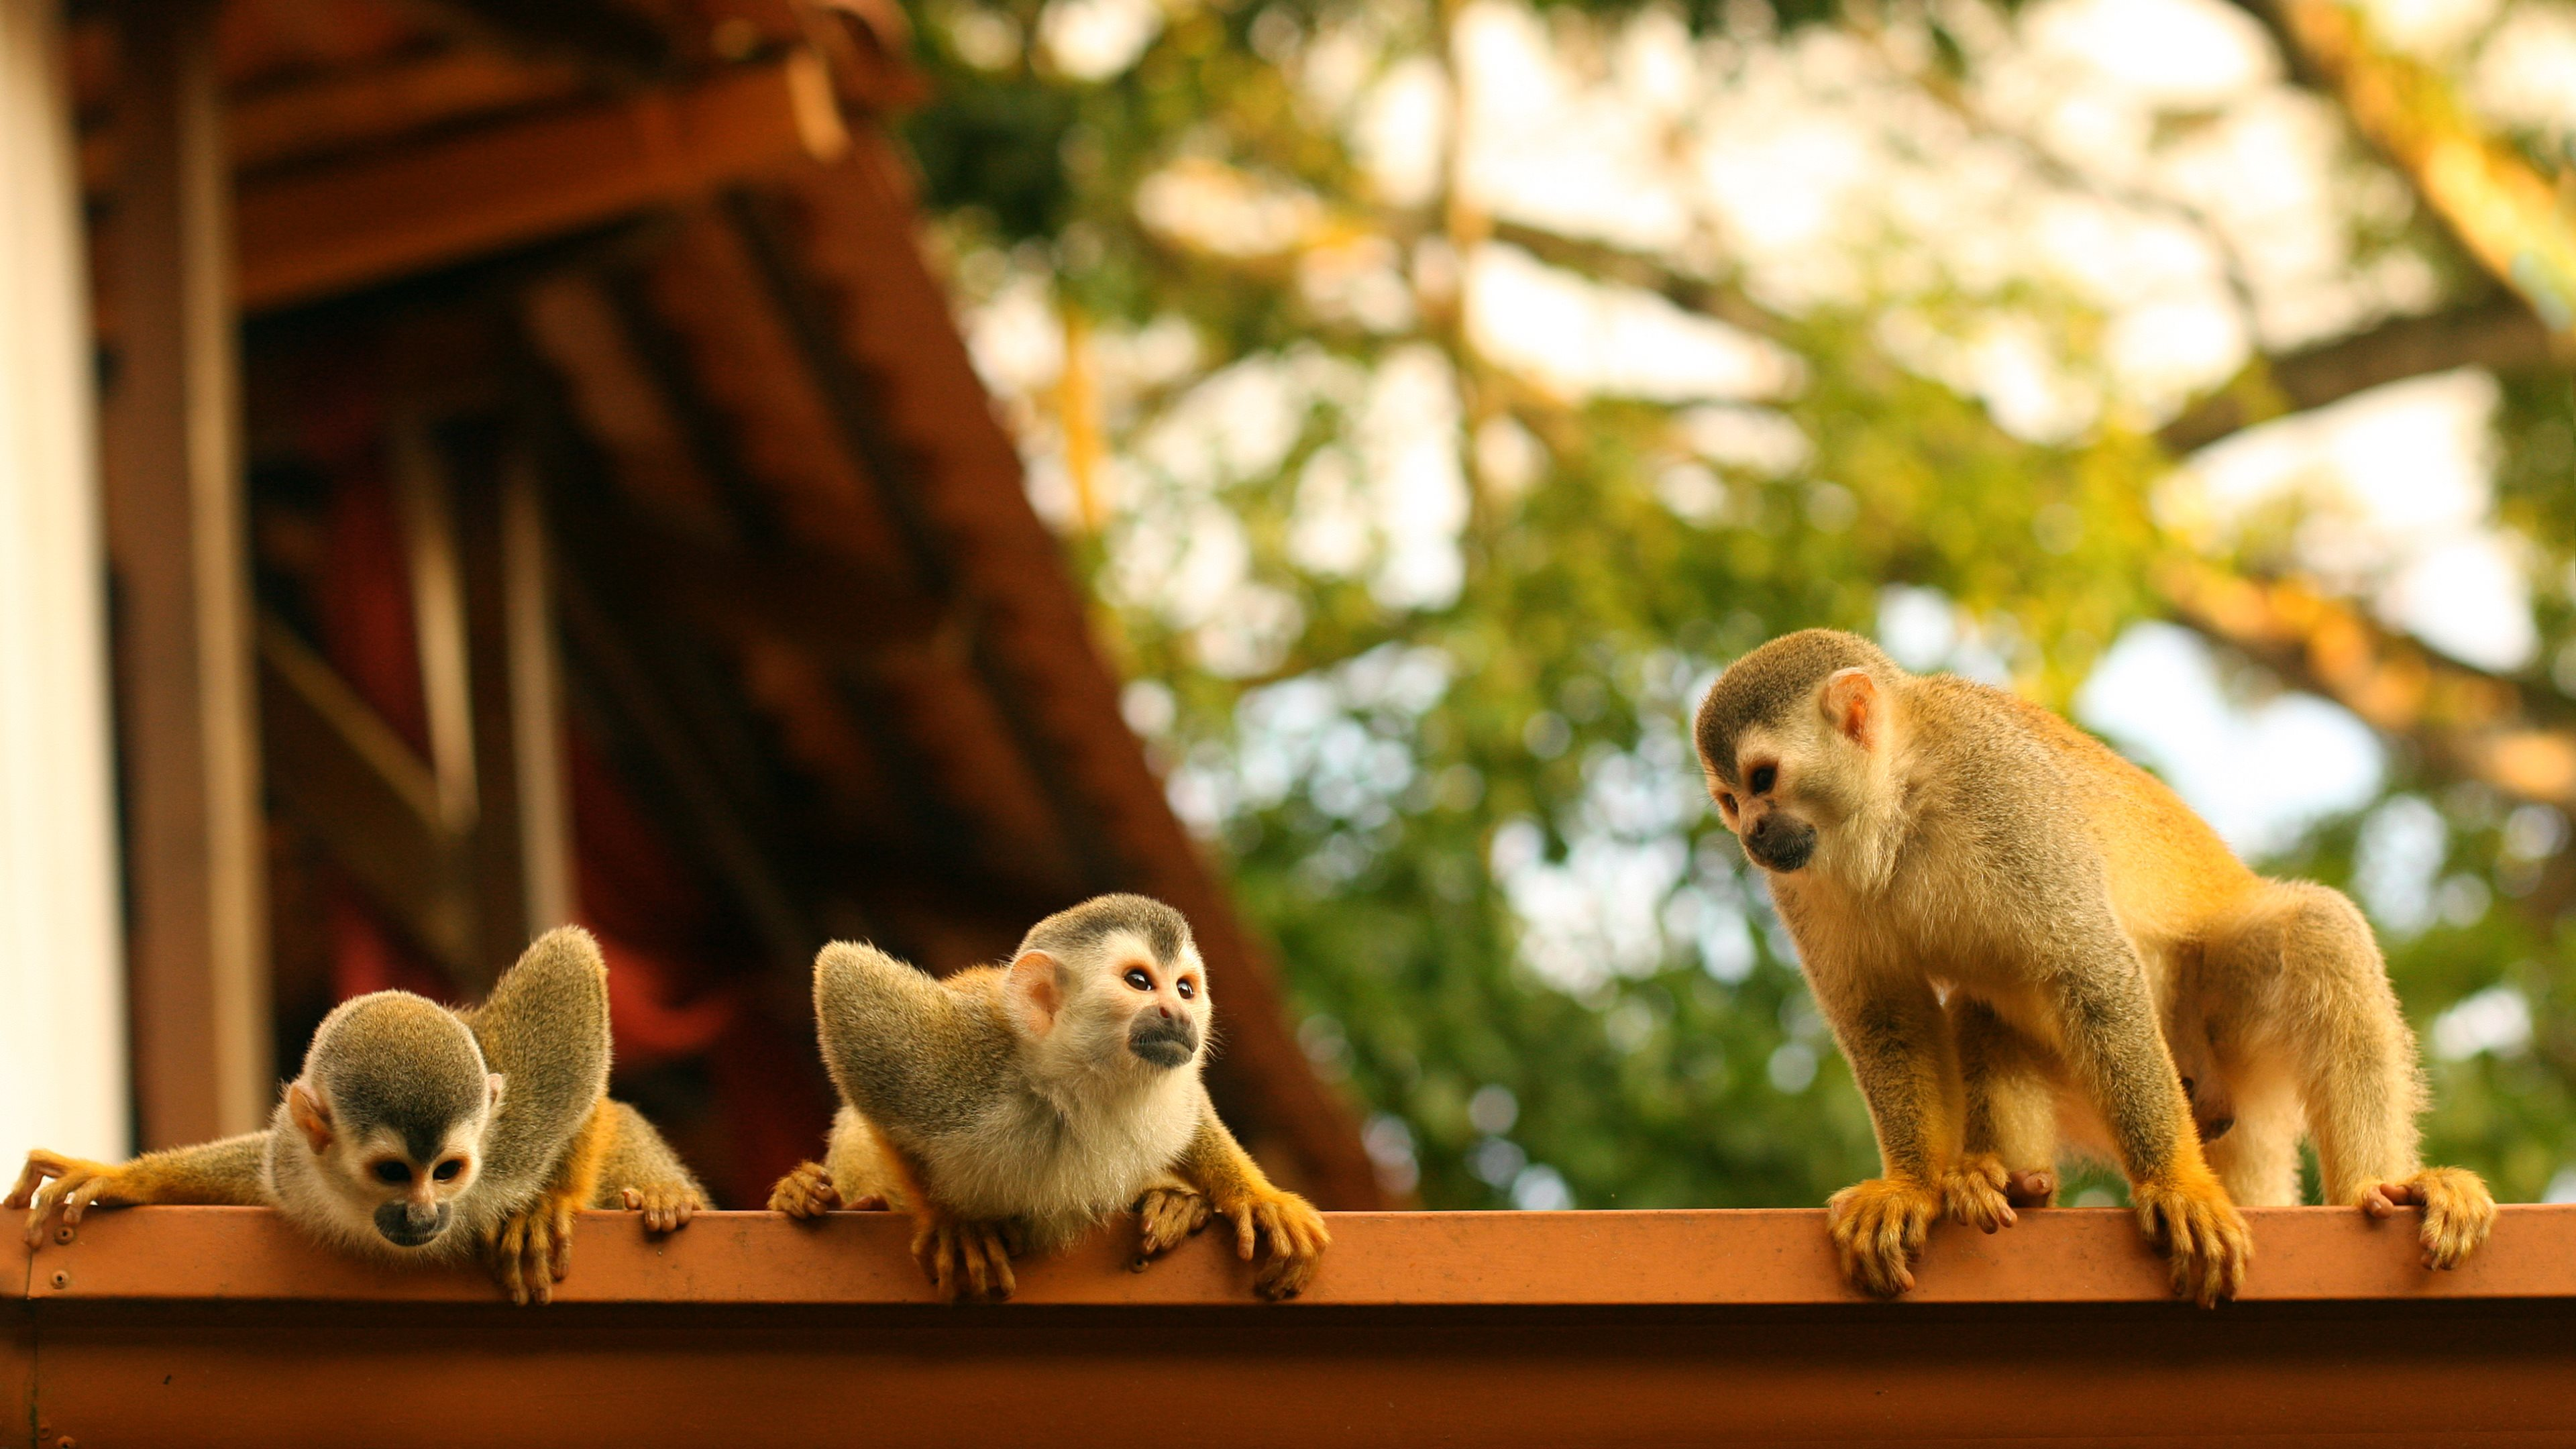 Cute Monkey Wallpapers For Mobile 1 Spider Monkey Hd Wallpapers Backgrounds Wallpaper Abyss